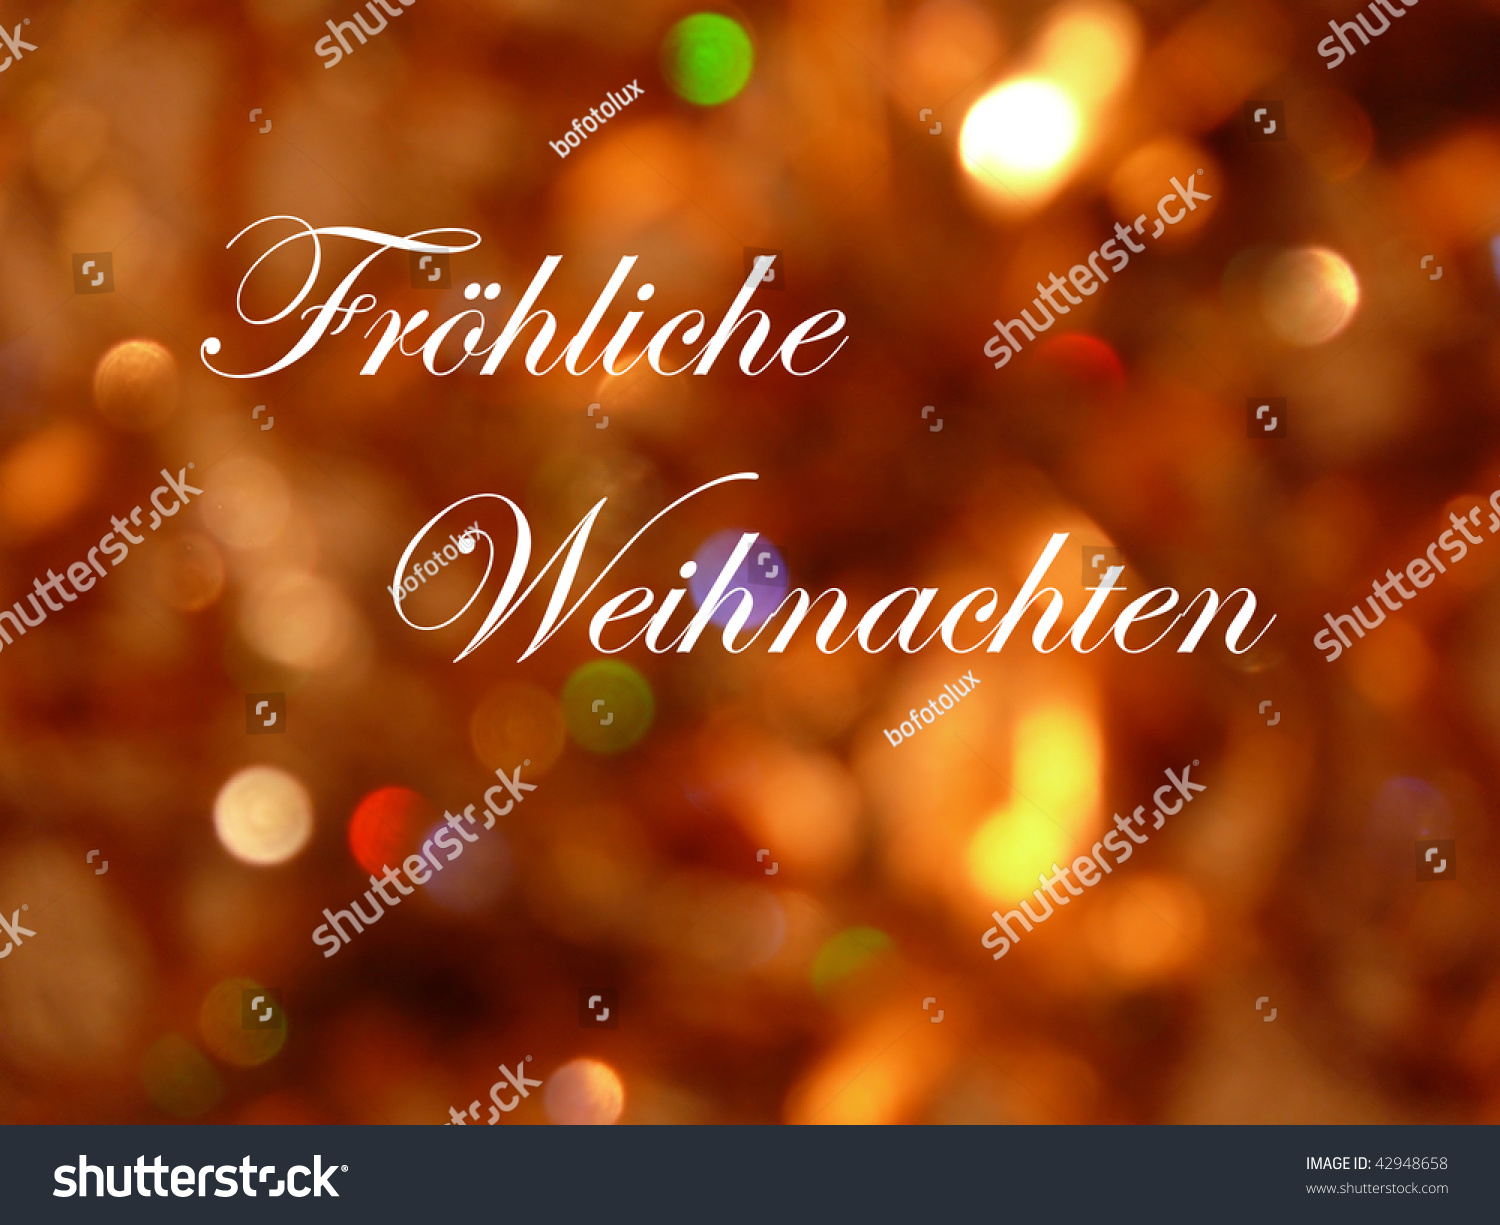 froehliche weihnachten in german language stock photo. Black Bedroom Furniture Sets. Home Design Ideas